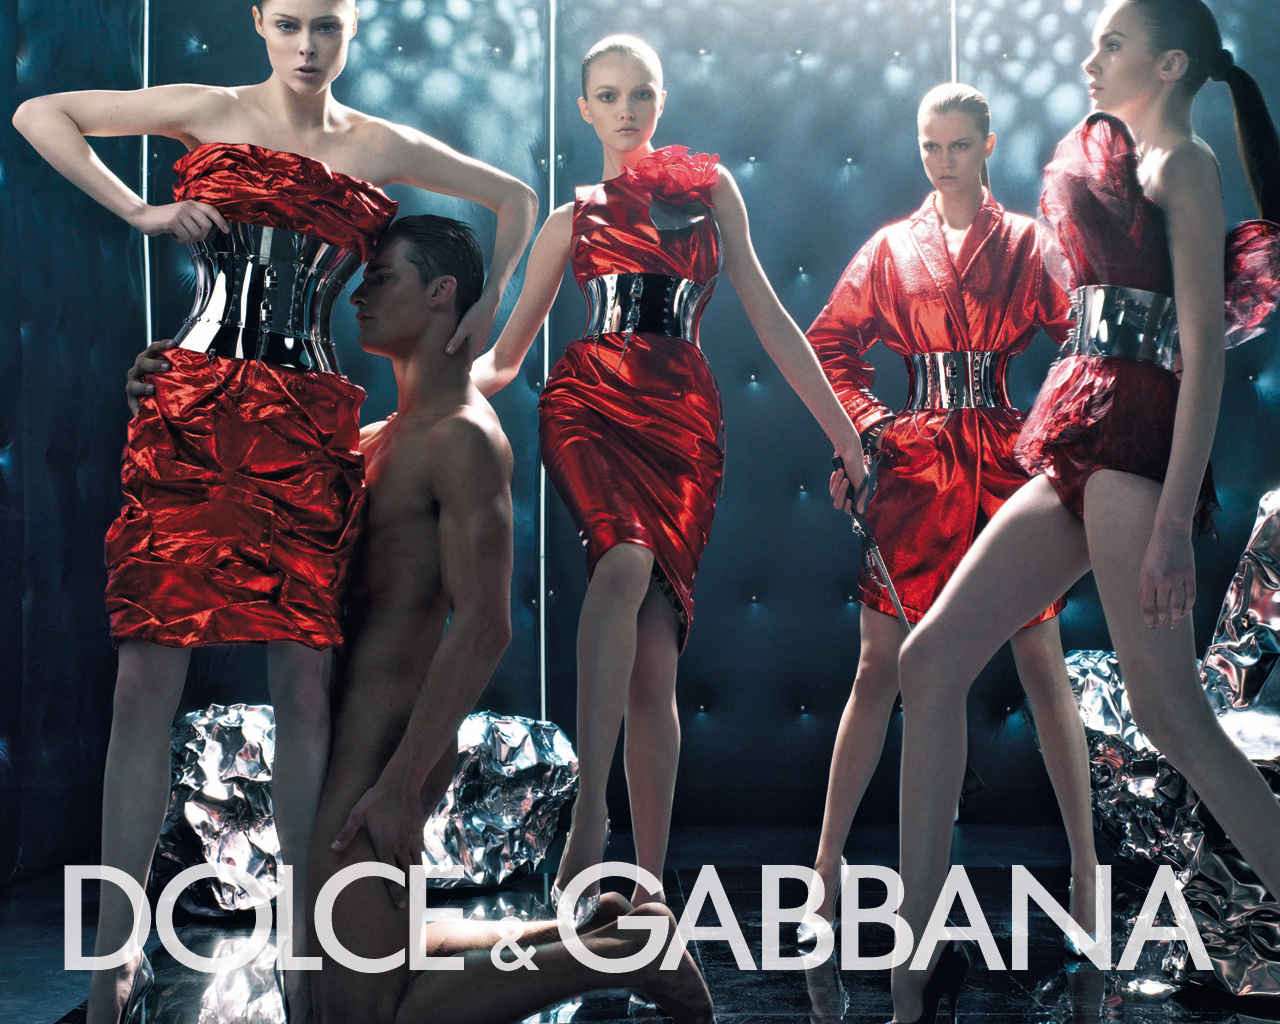 Dolce & Gabbana / wallpaper - Passion for Fashion 1280x1024